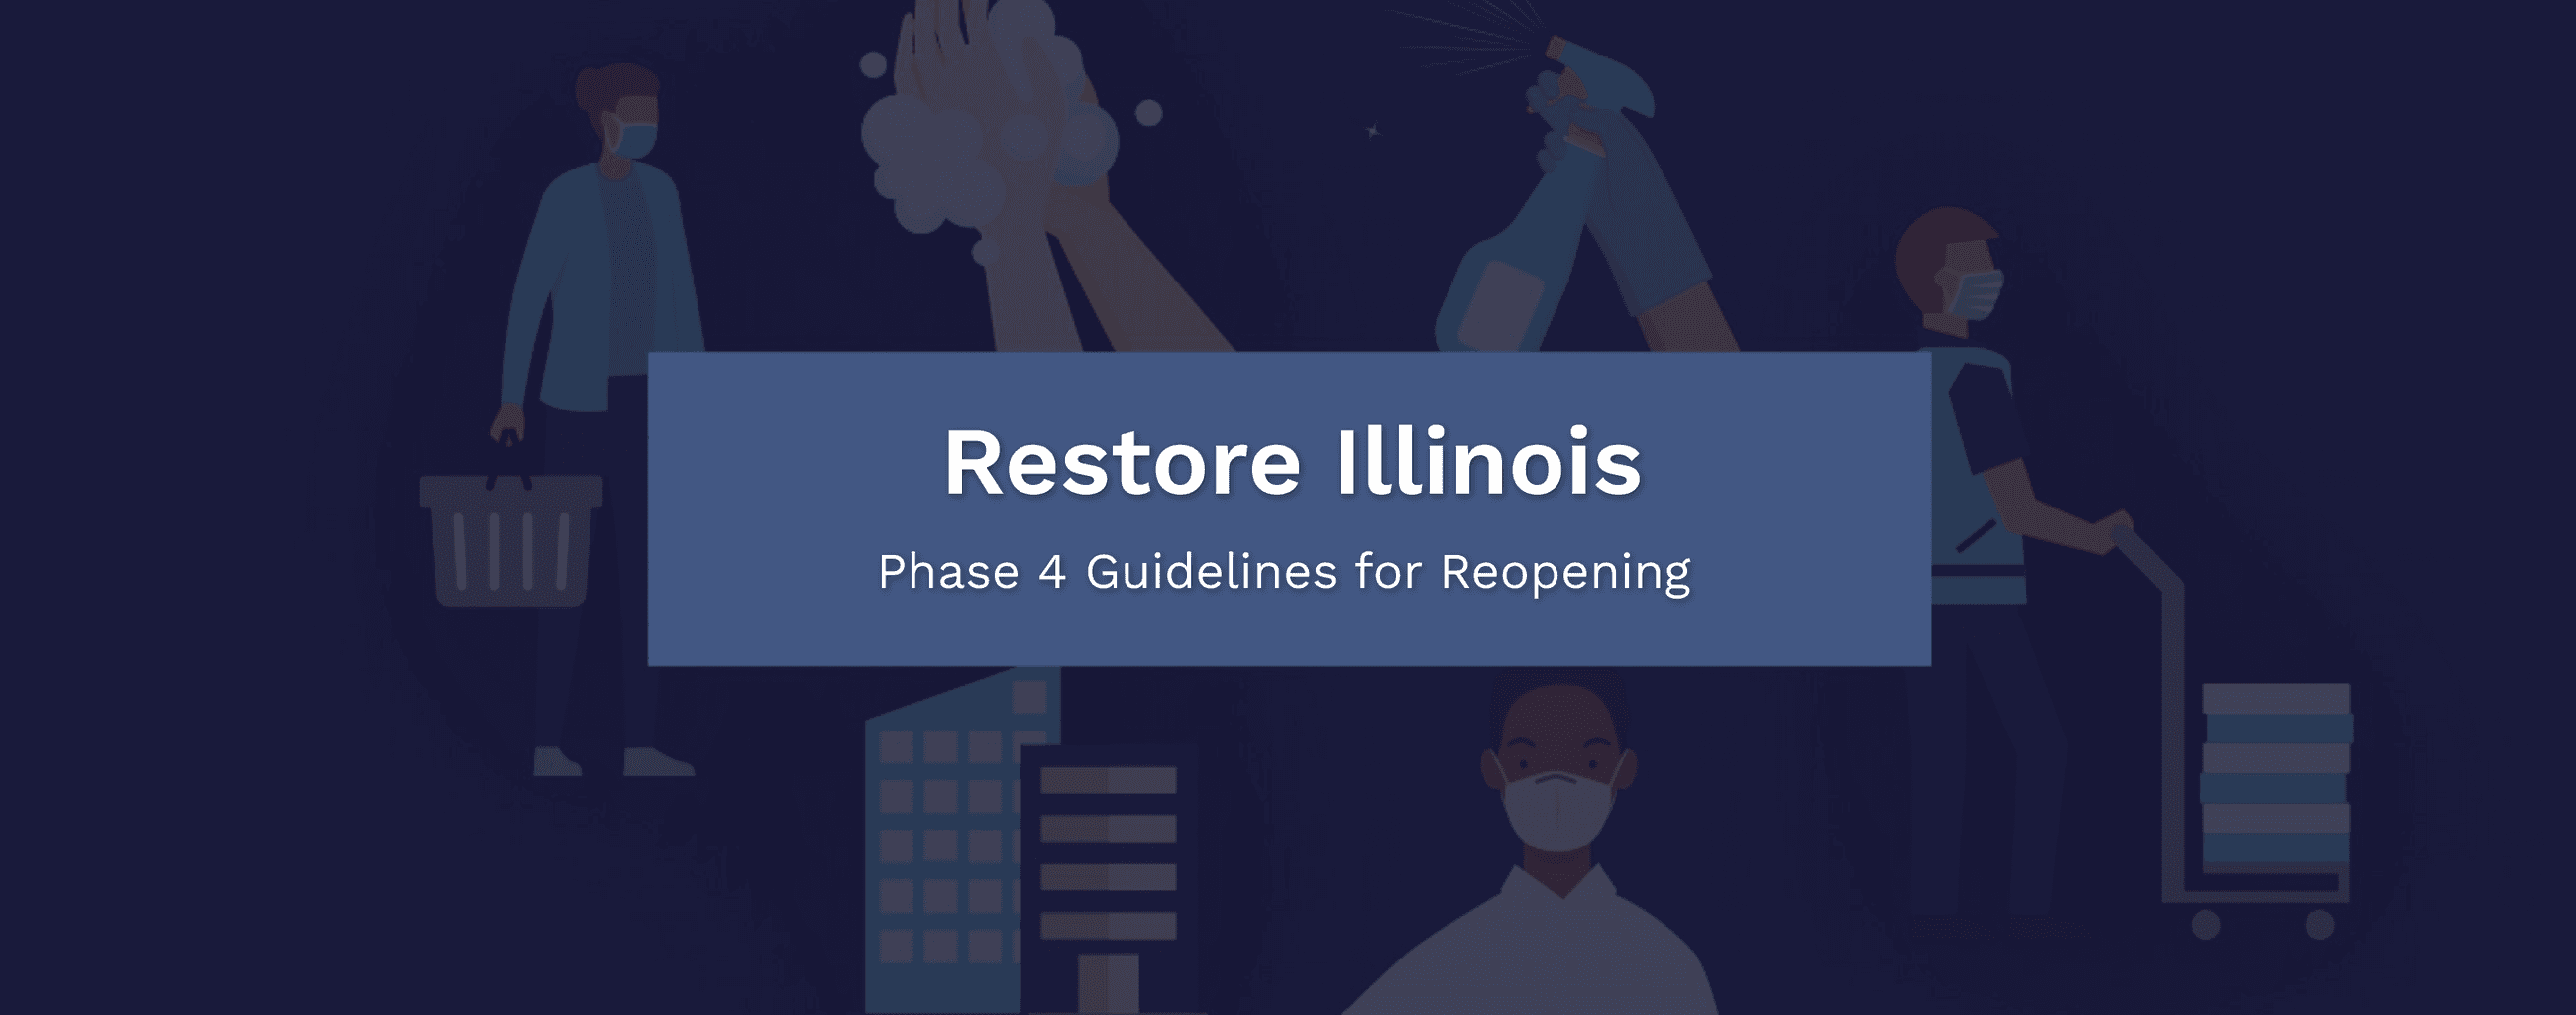 Restore Illinois Phase 4 Banner